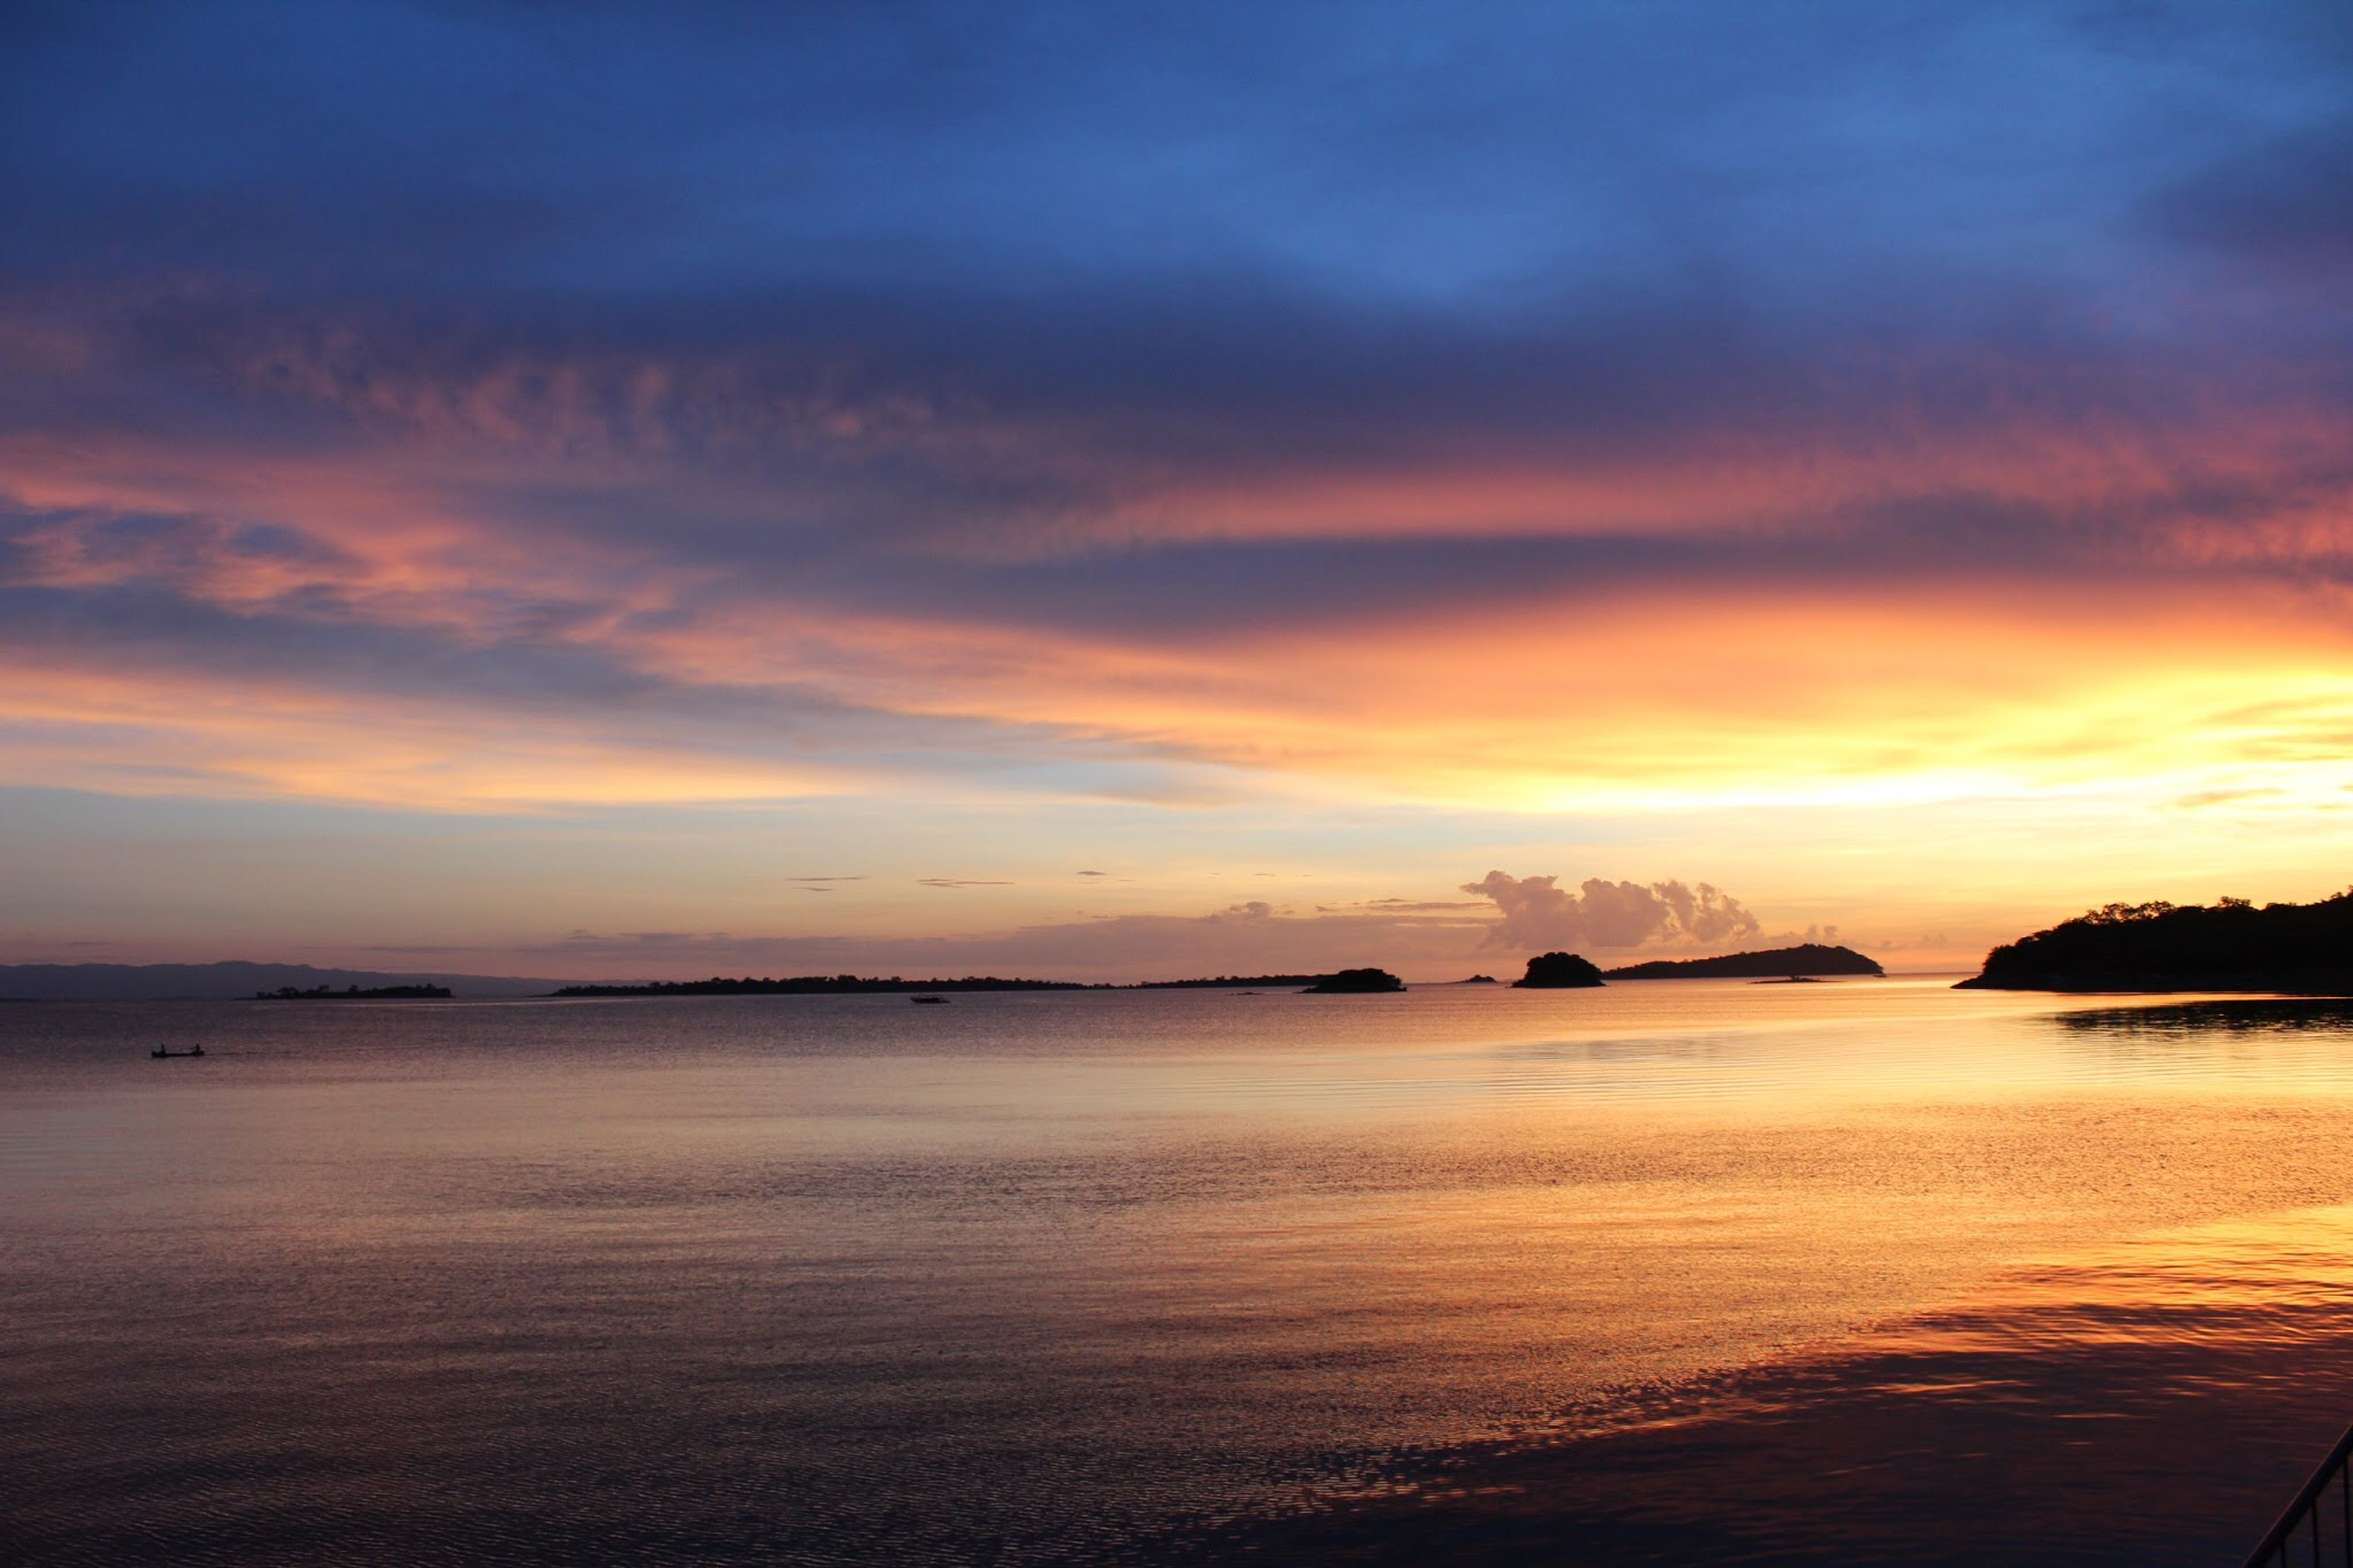 water, sunset, scenics, sea, tranquil scene, tranquility, beauty in nature, cloud - sky, sky, idyllic, calm, orange color, nature, cloud, majestic, dramatic sky, ocean, coastline, atmospheric mood, moody sky, non-urban scene, waterfront, shore, seascape, distant, outdoors, remote, atmosphere, cloudy, no people